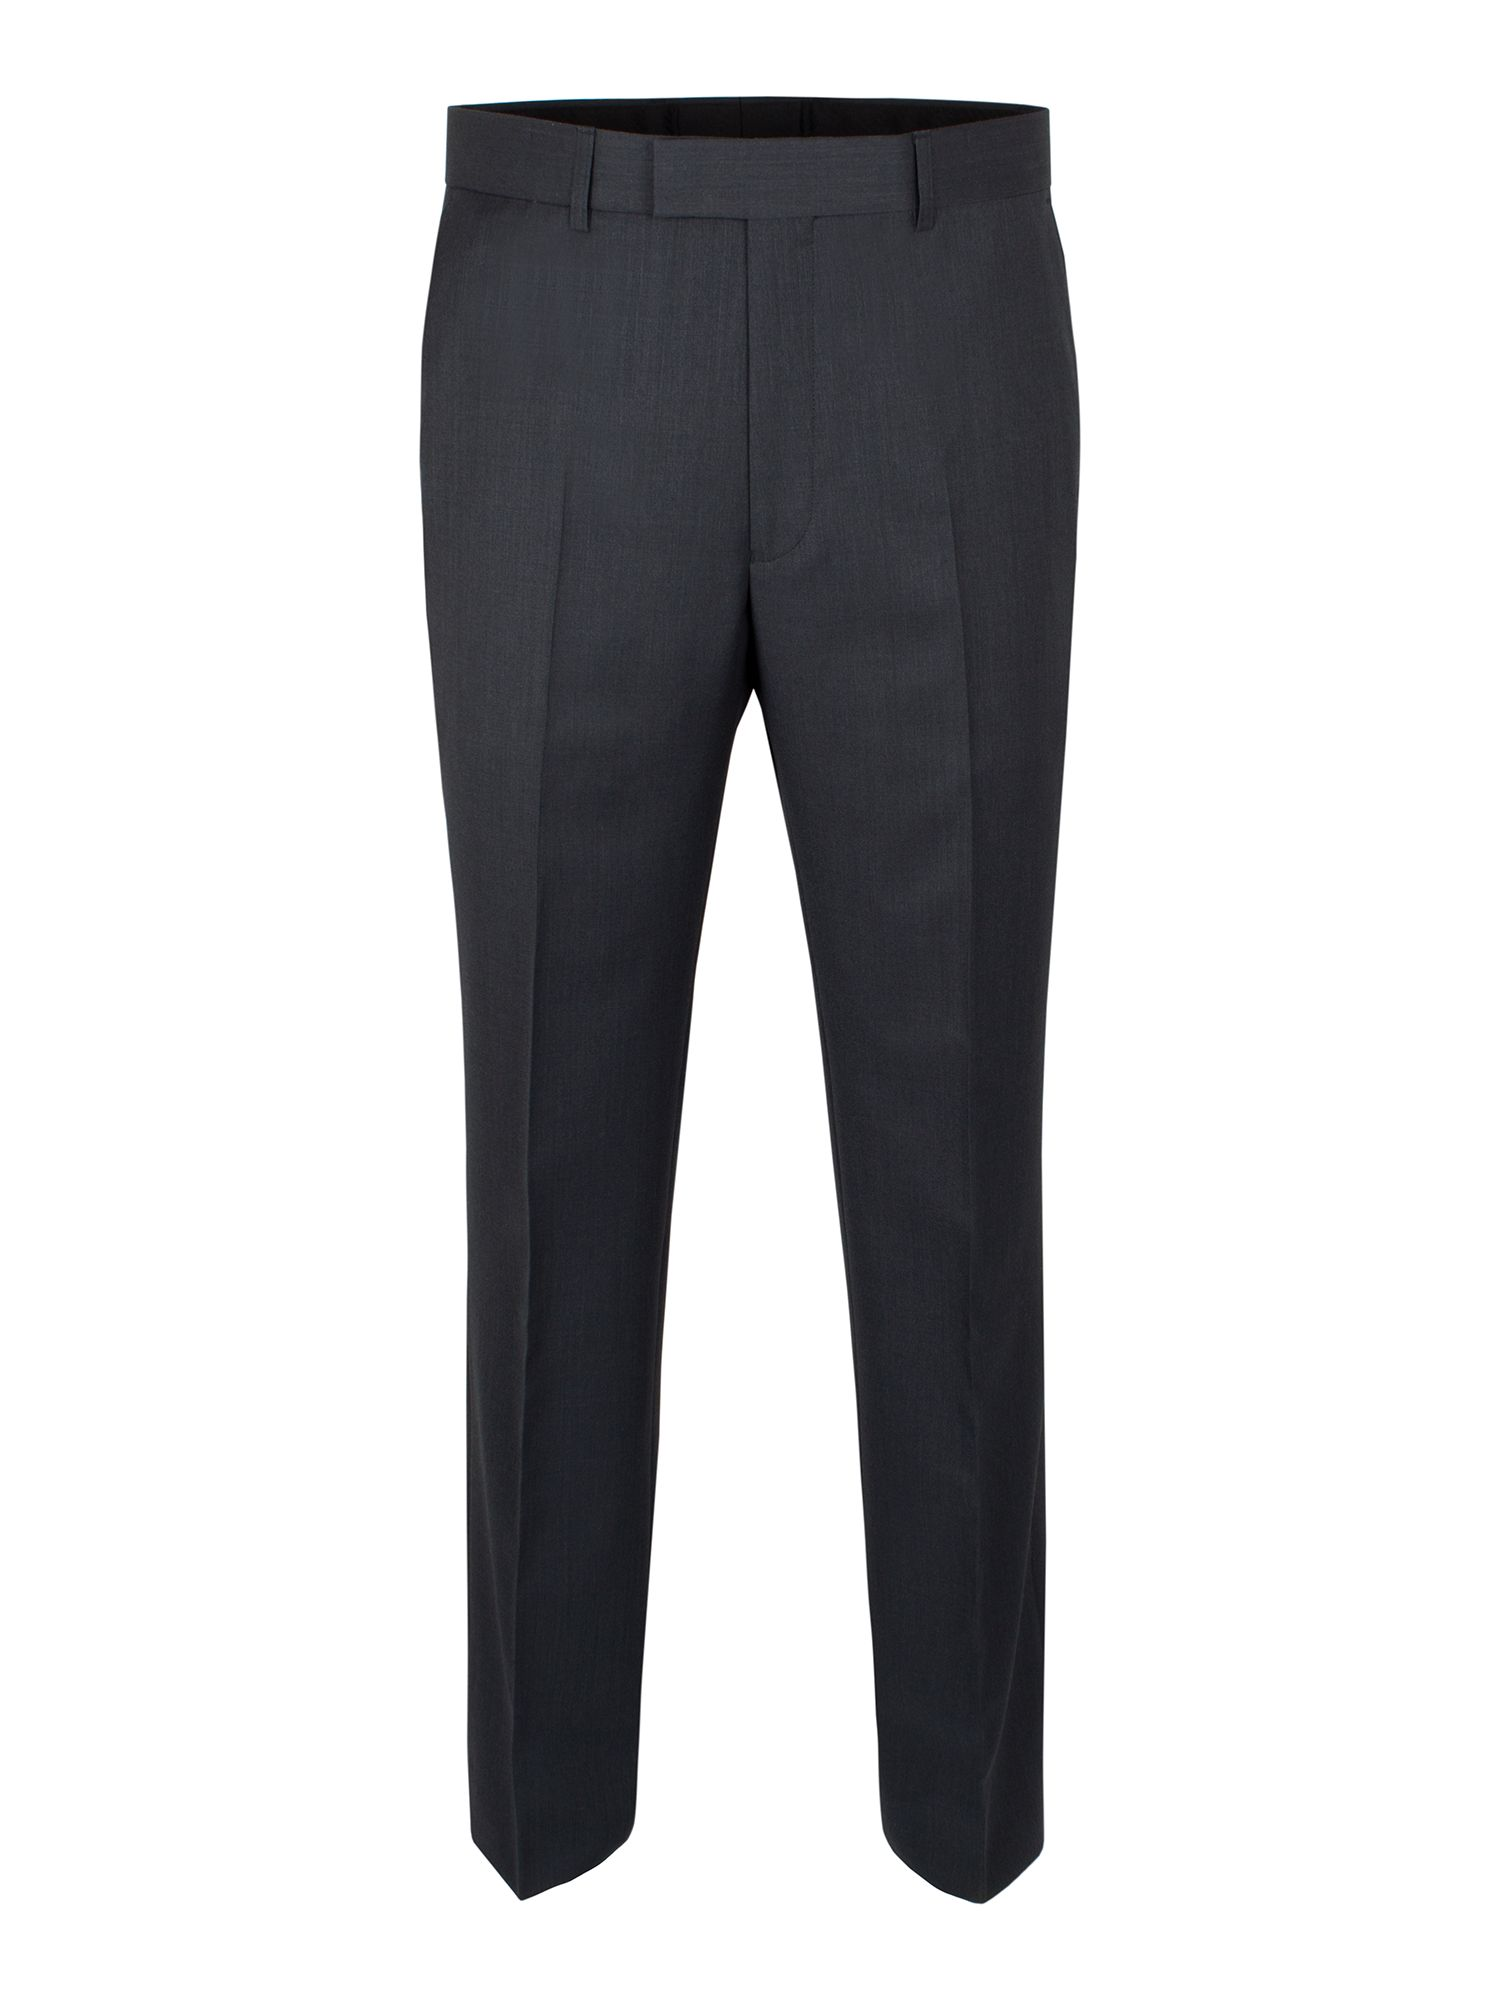 Charcoal core twill trouser